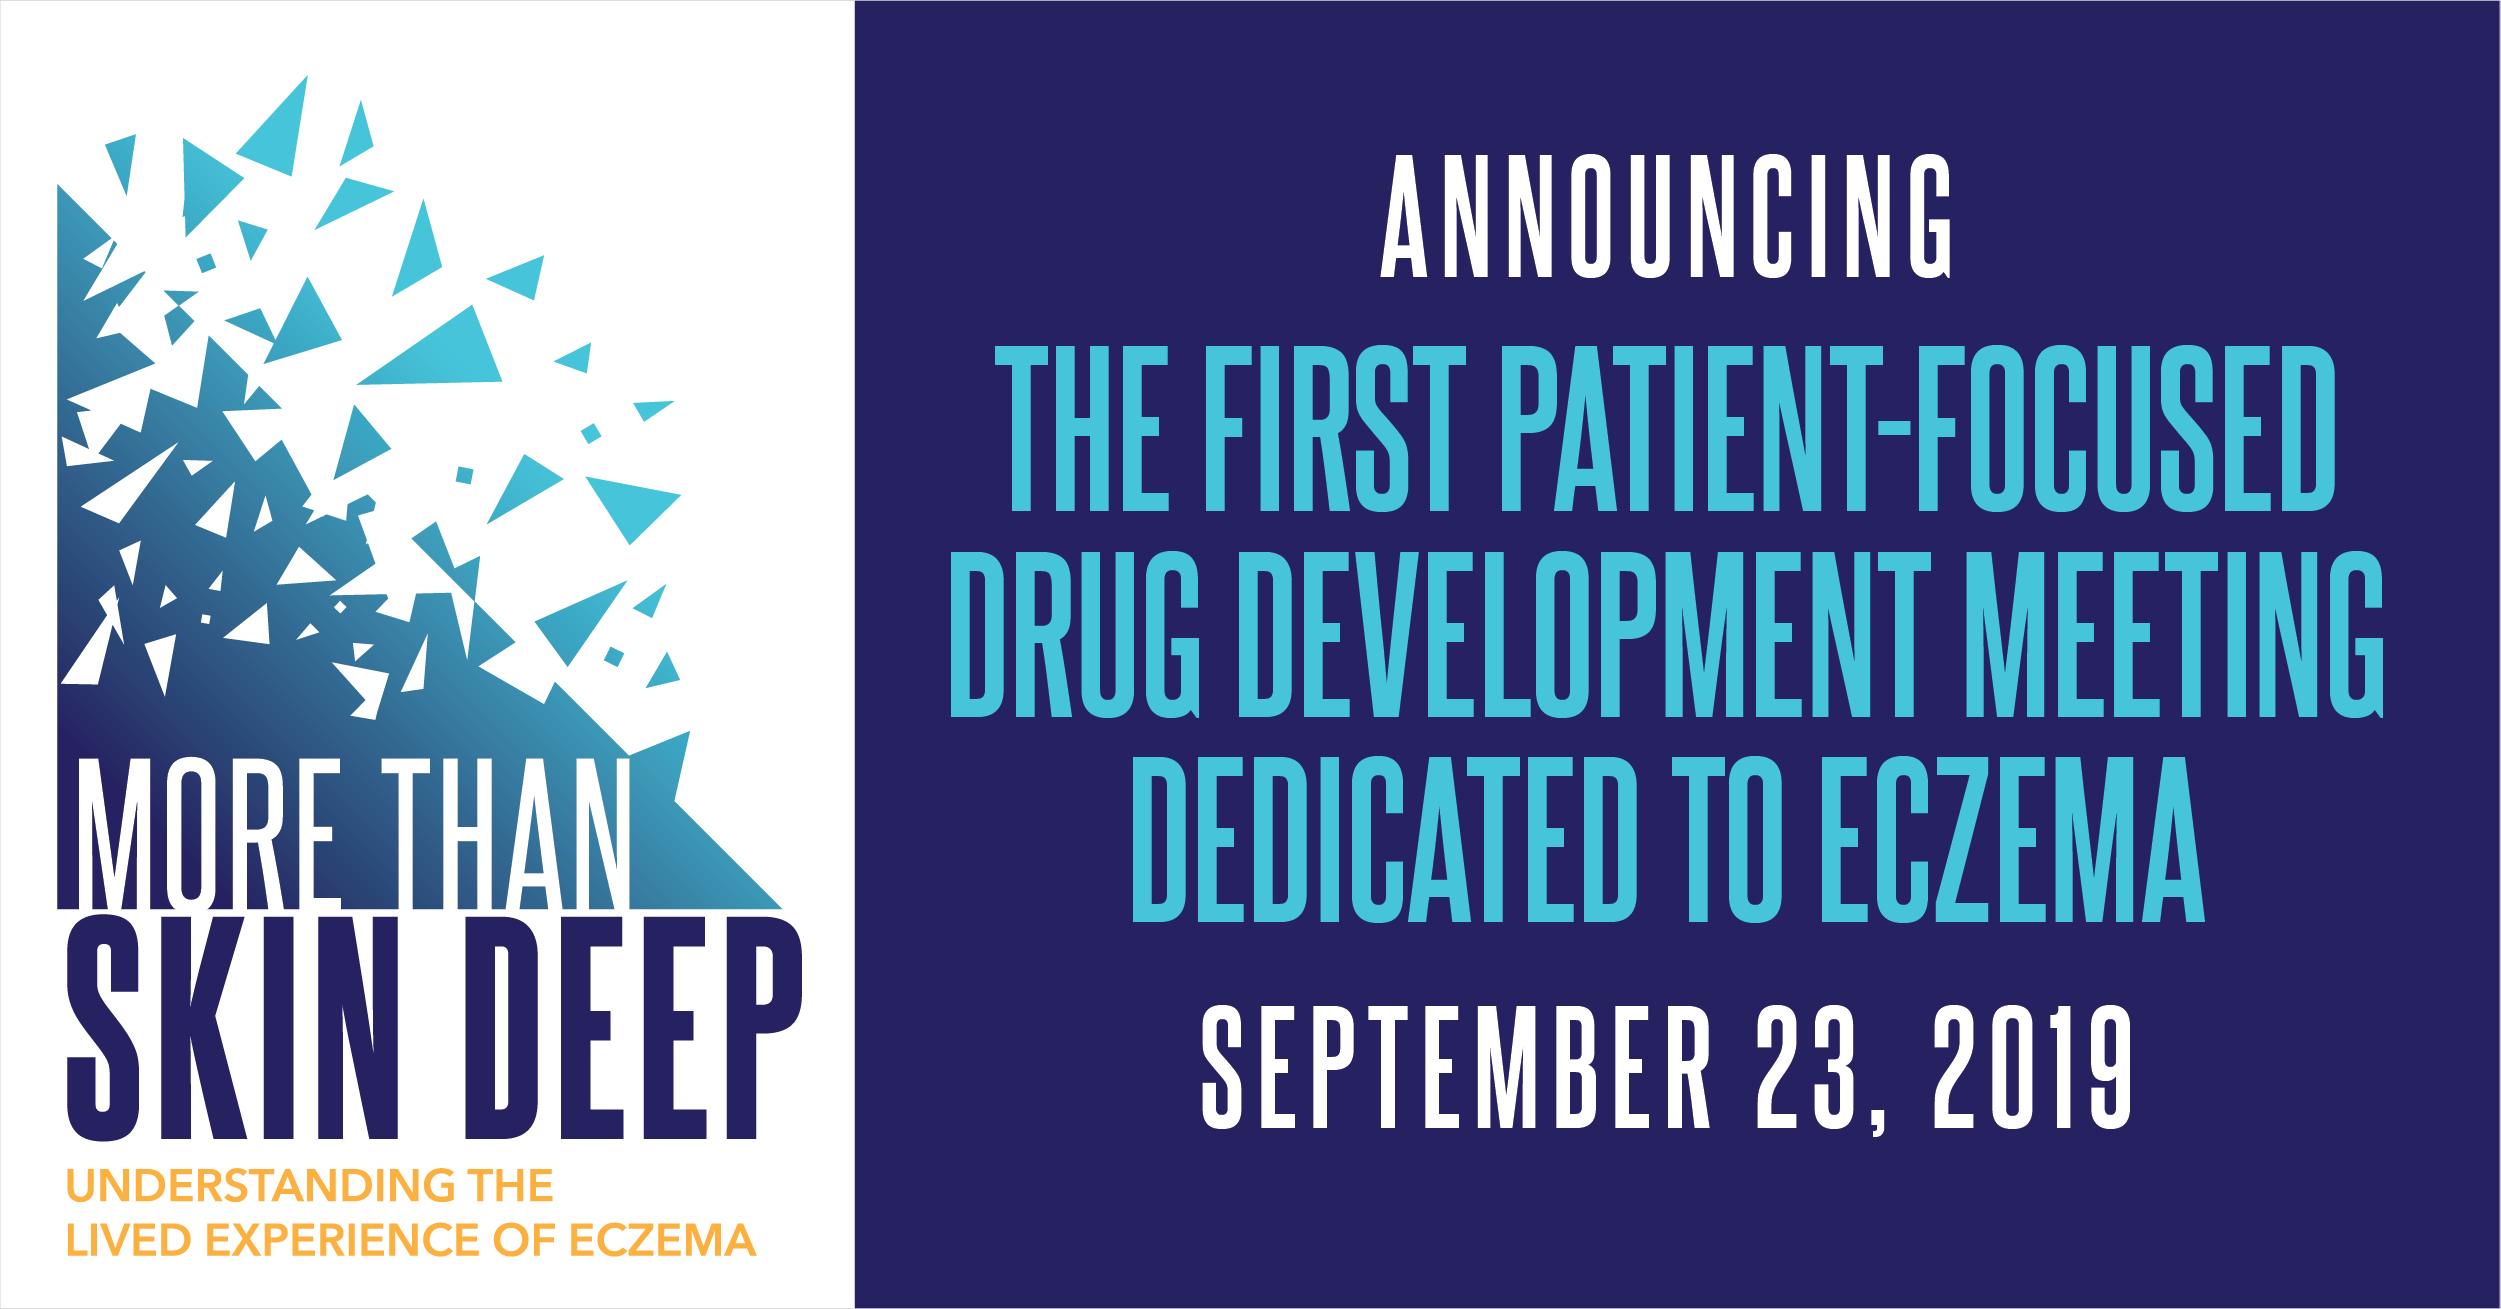 Announcing the first patient-focused drug development meeting dedicated to eczema. September 23, 2019